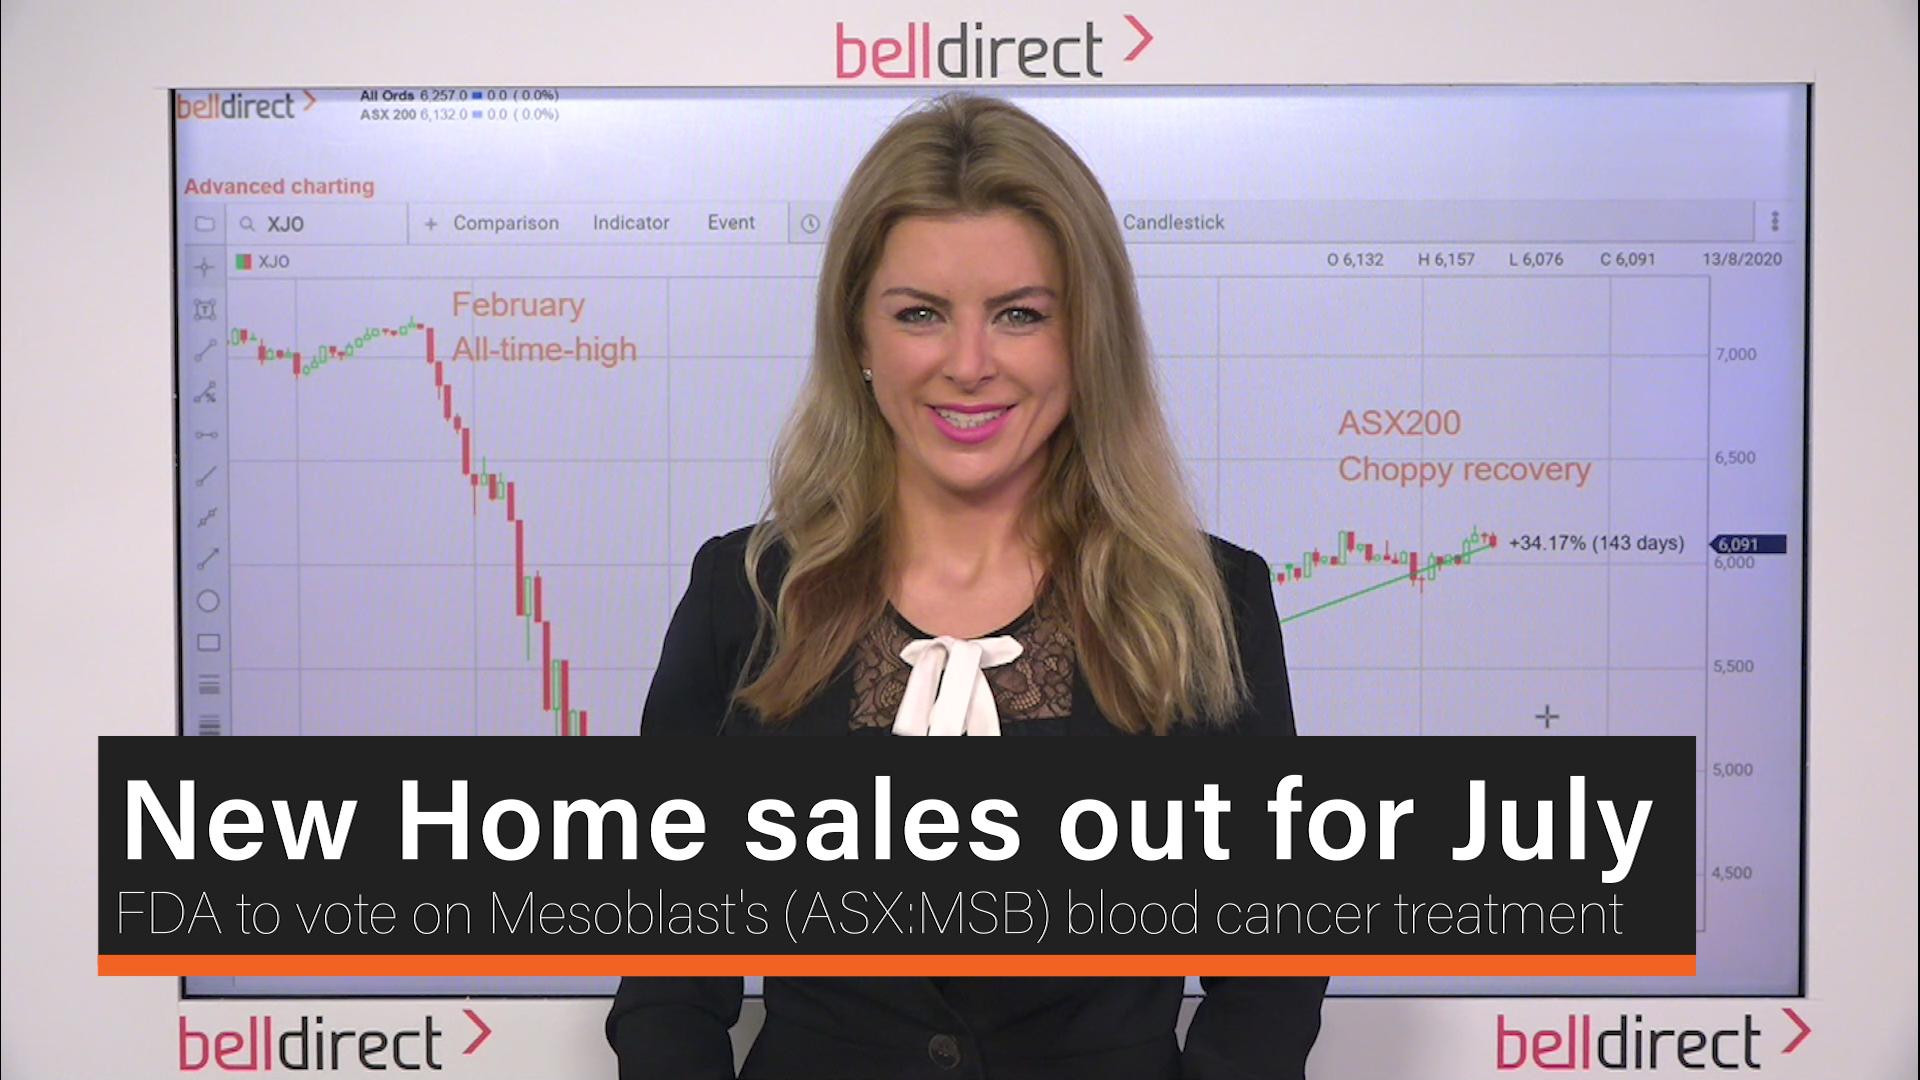 New Home sales out for July